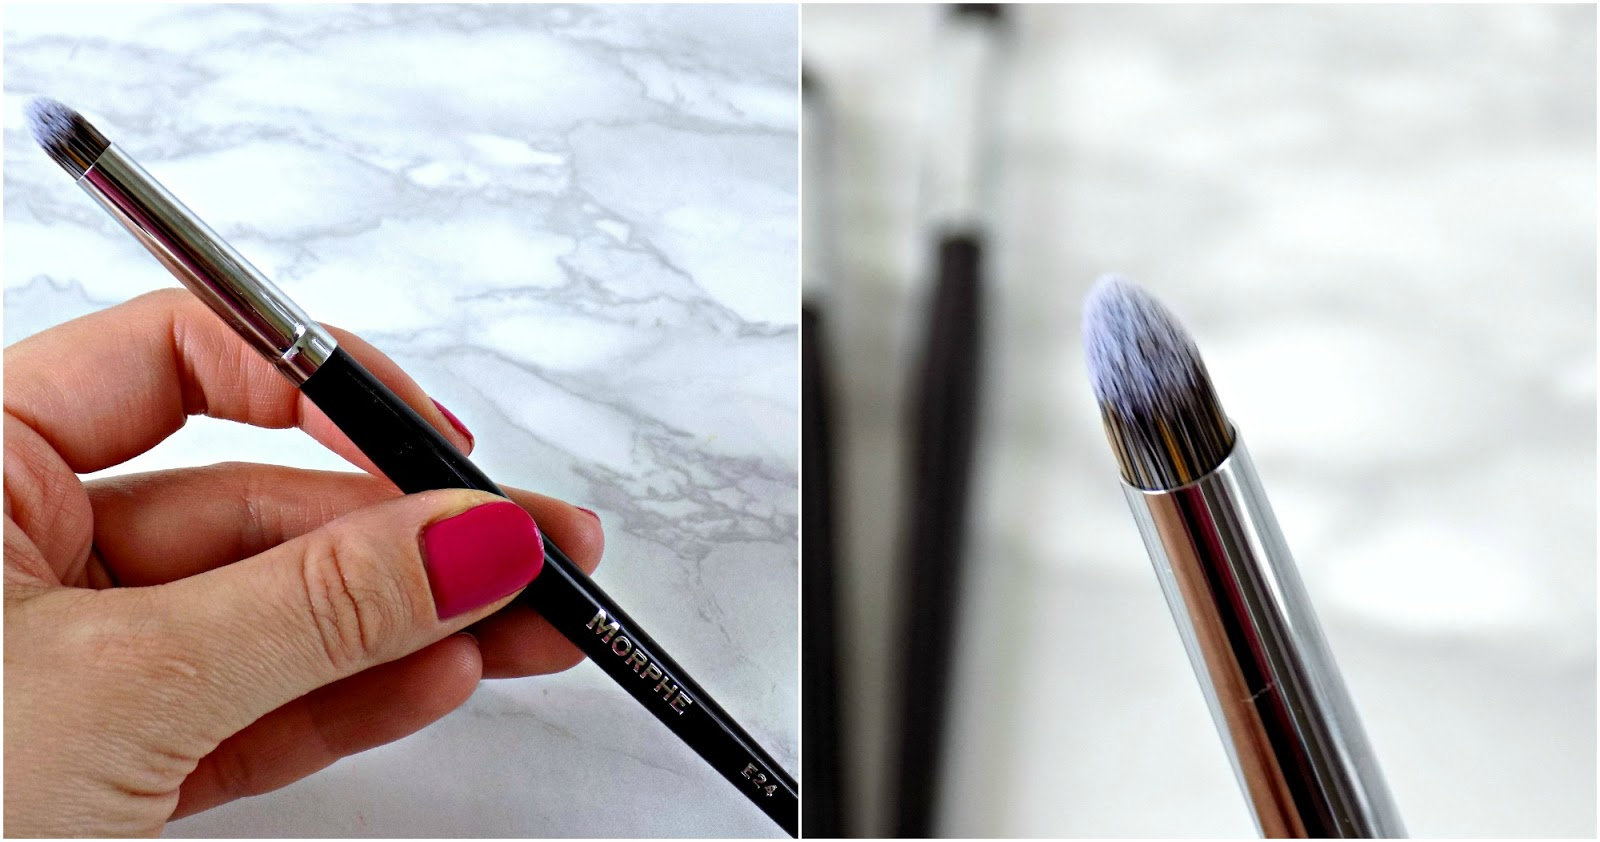 Morphe Brushes E24